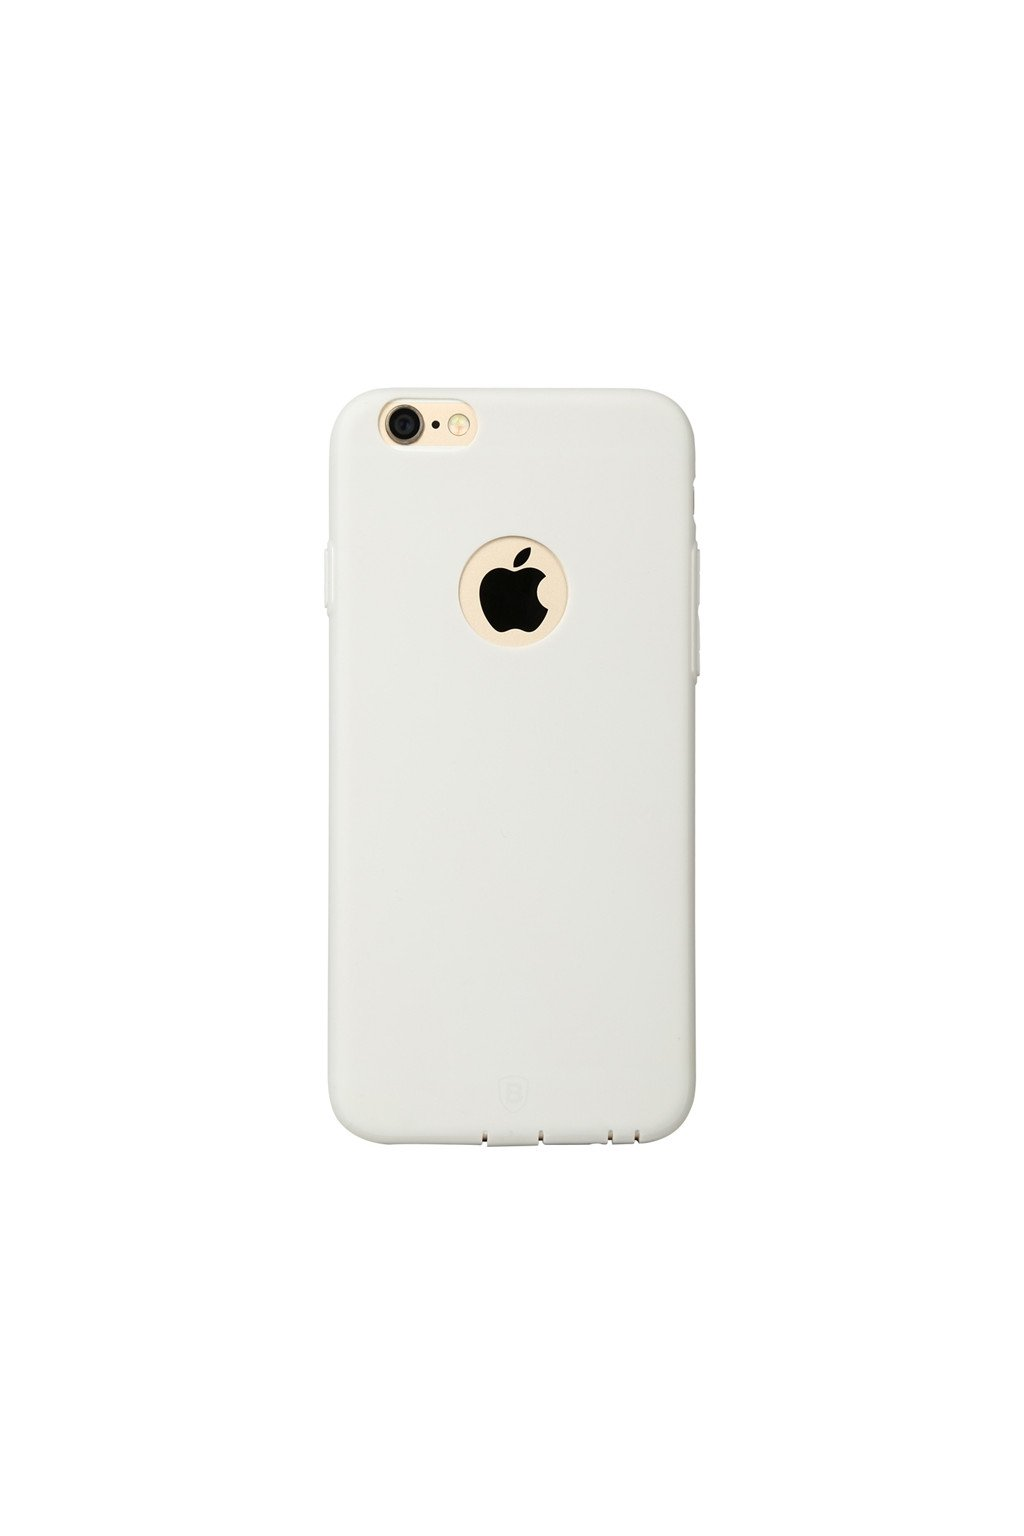 Pouzdro Apple iPhone 6/6S Baseus TPU Mousse, grey/white